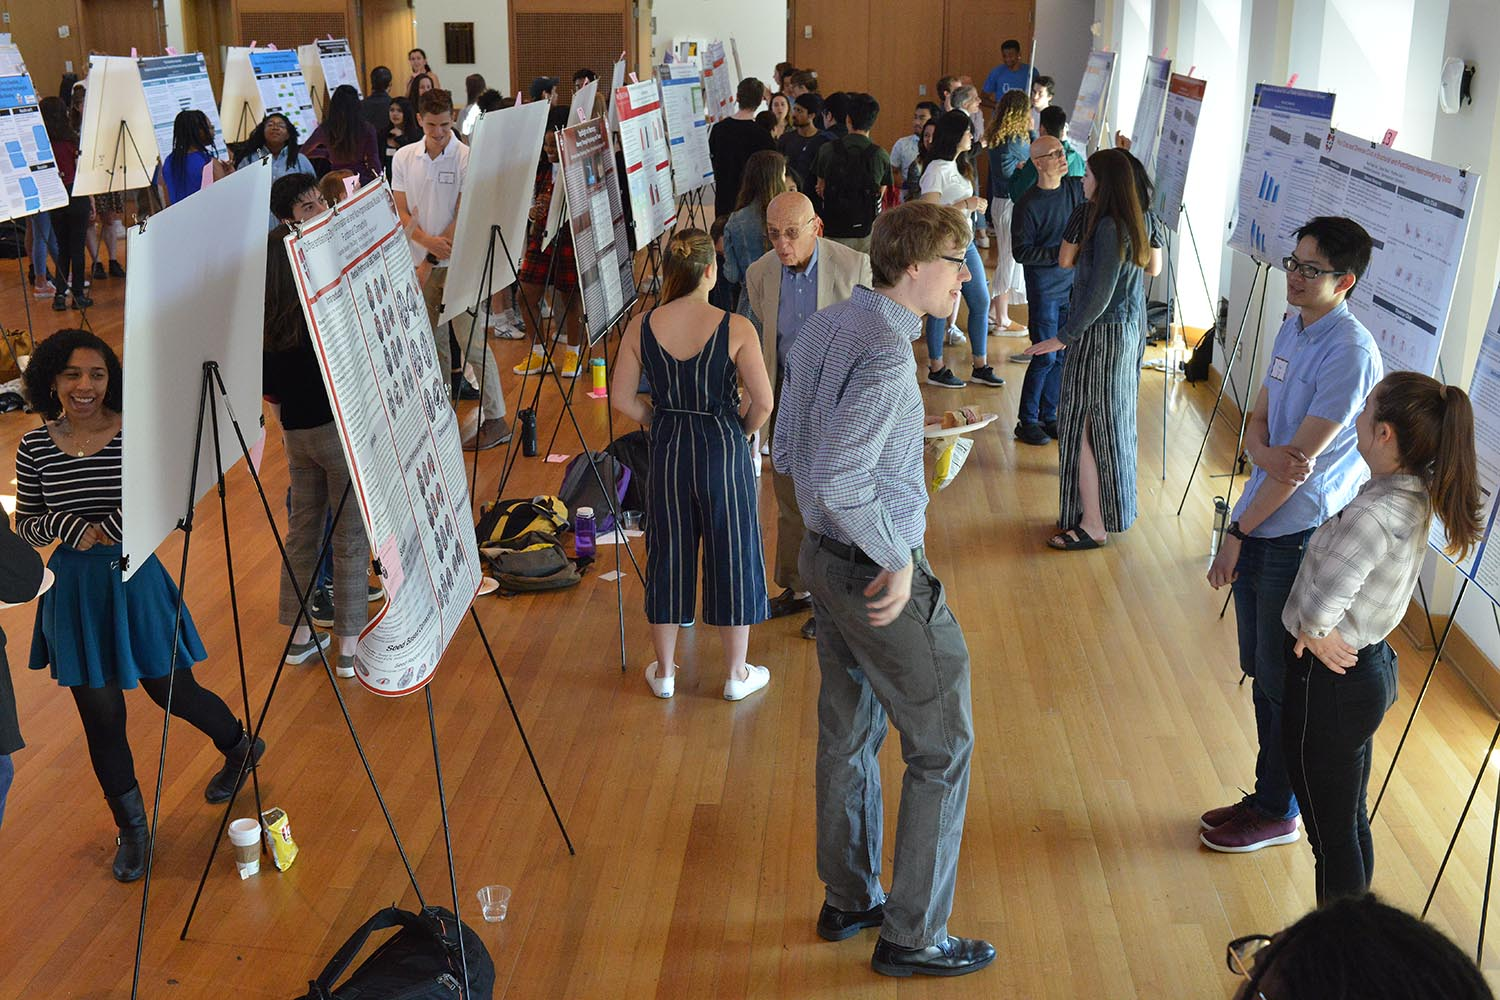 More than 120 students presented 65 posters during the Department of Psychology's Research Poster Presentation April 25 in Beckham Hall.